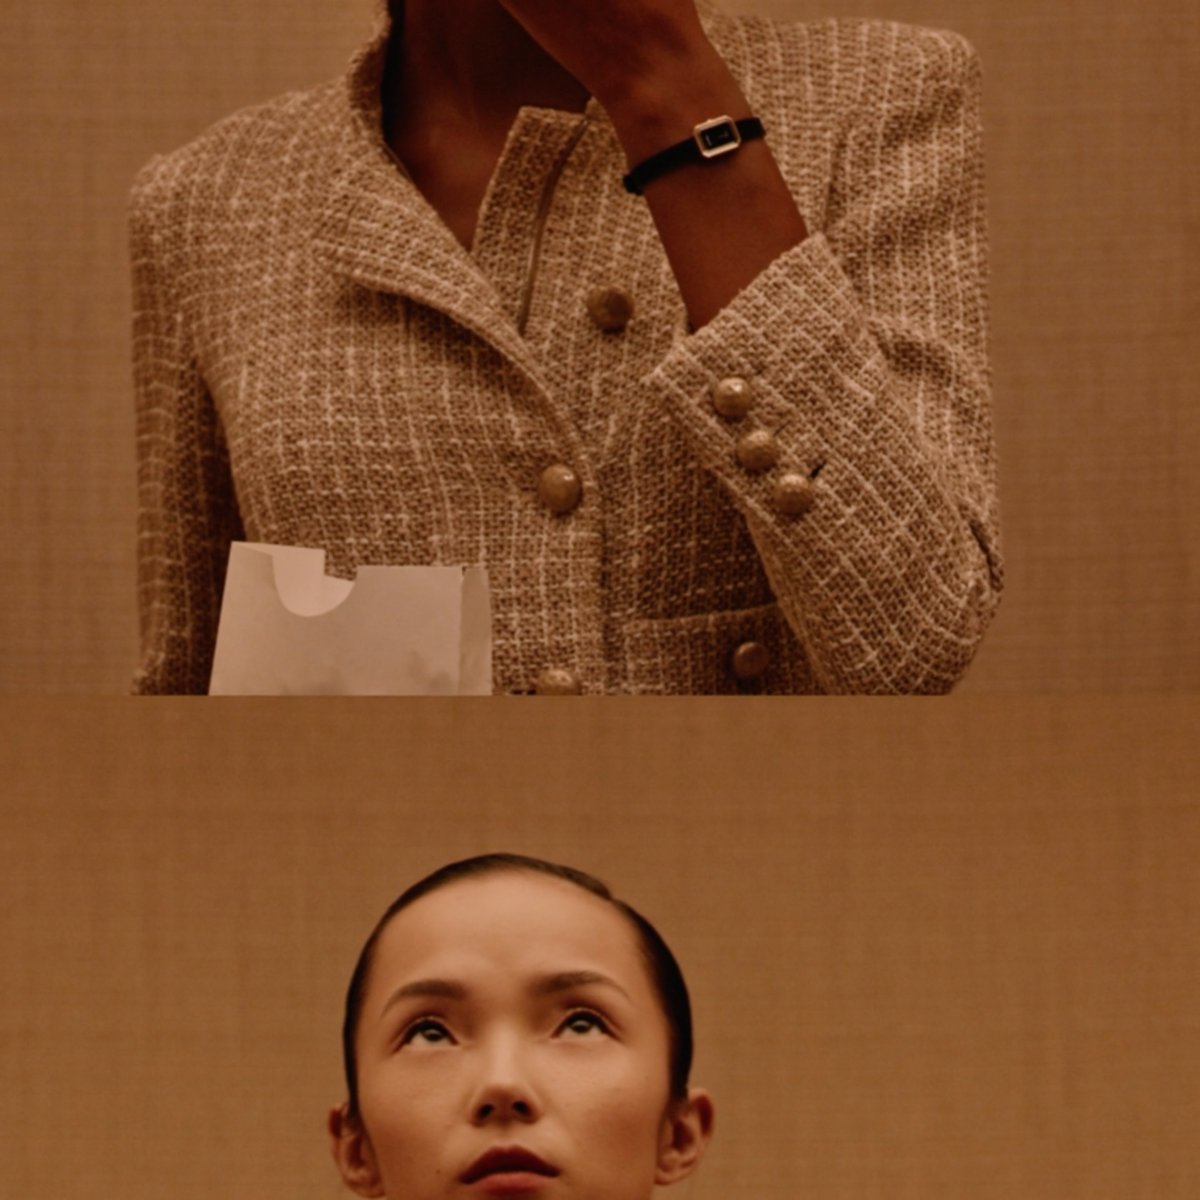 Xiao Wen Ju, Imari Karanja – the Moon, please.  #CHANELOverTheMoon #CHANELFineJewelry